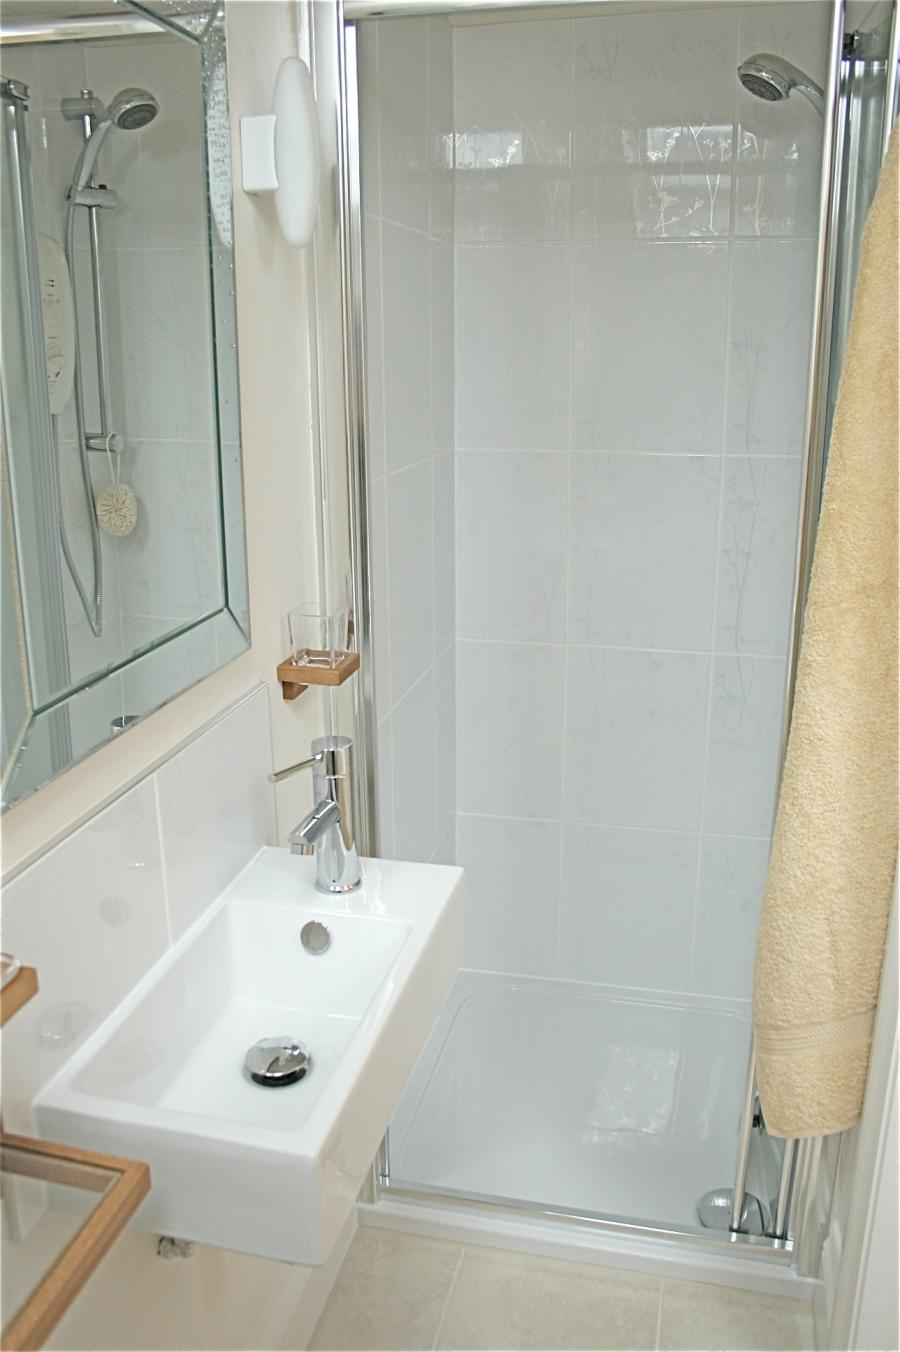 Small bathroom shower photo Bathroom design company limited